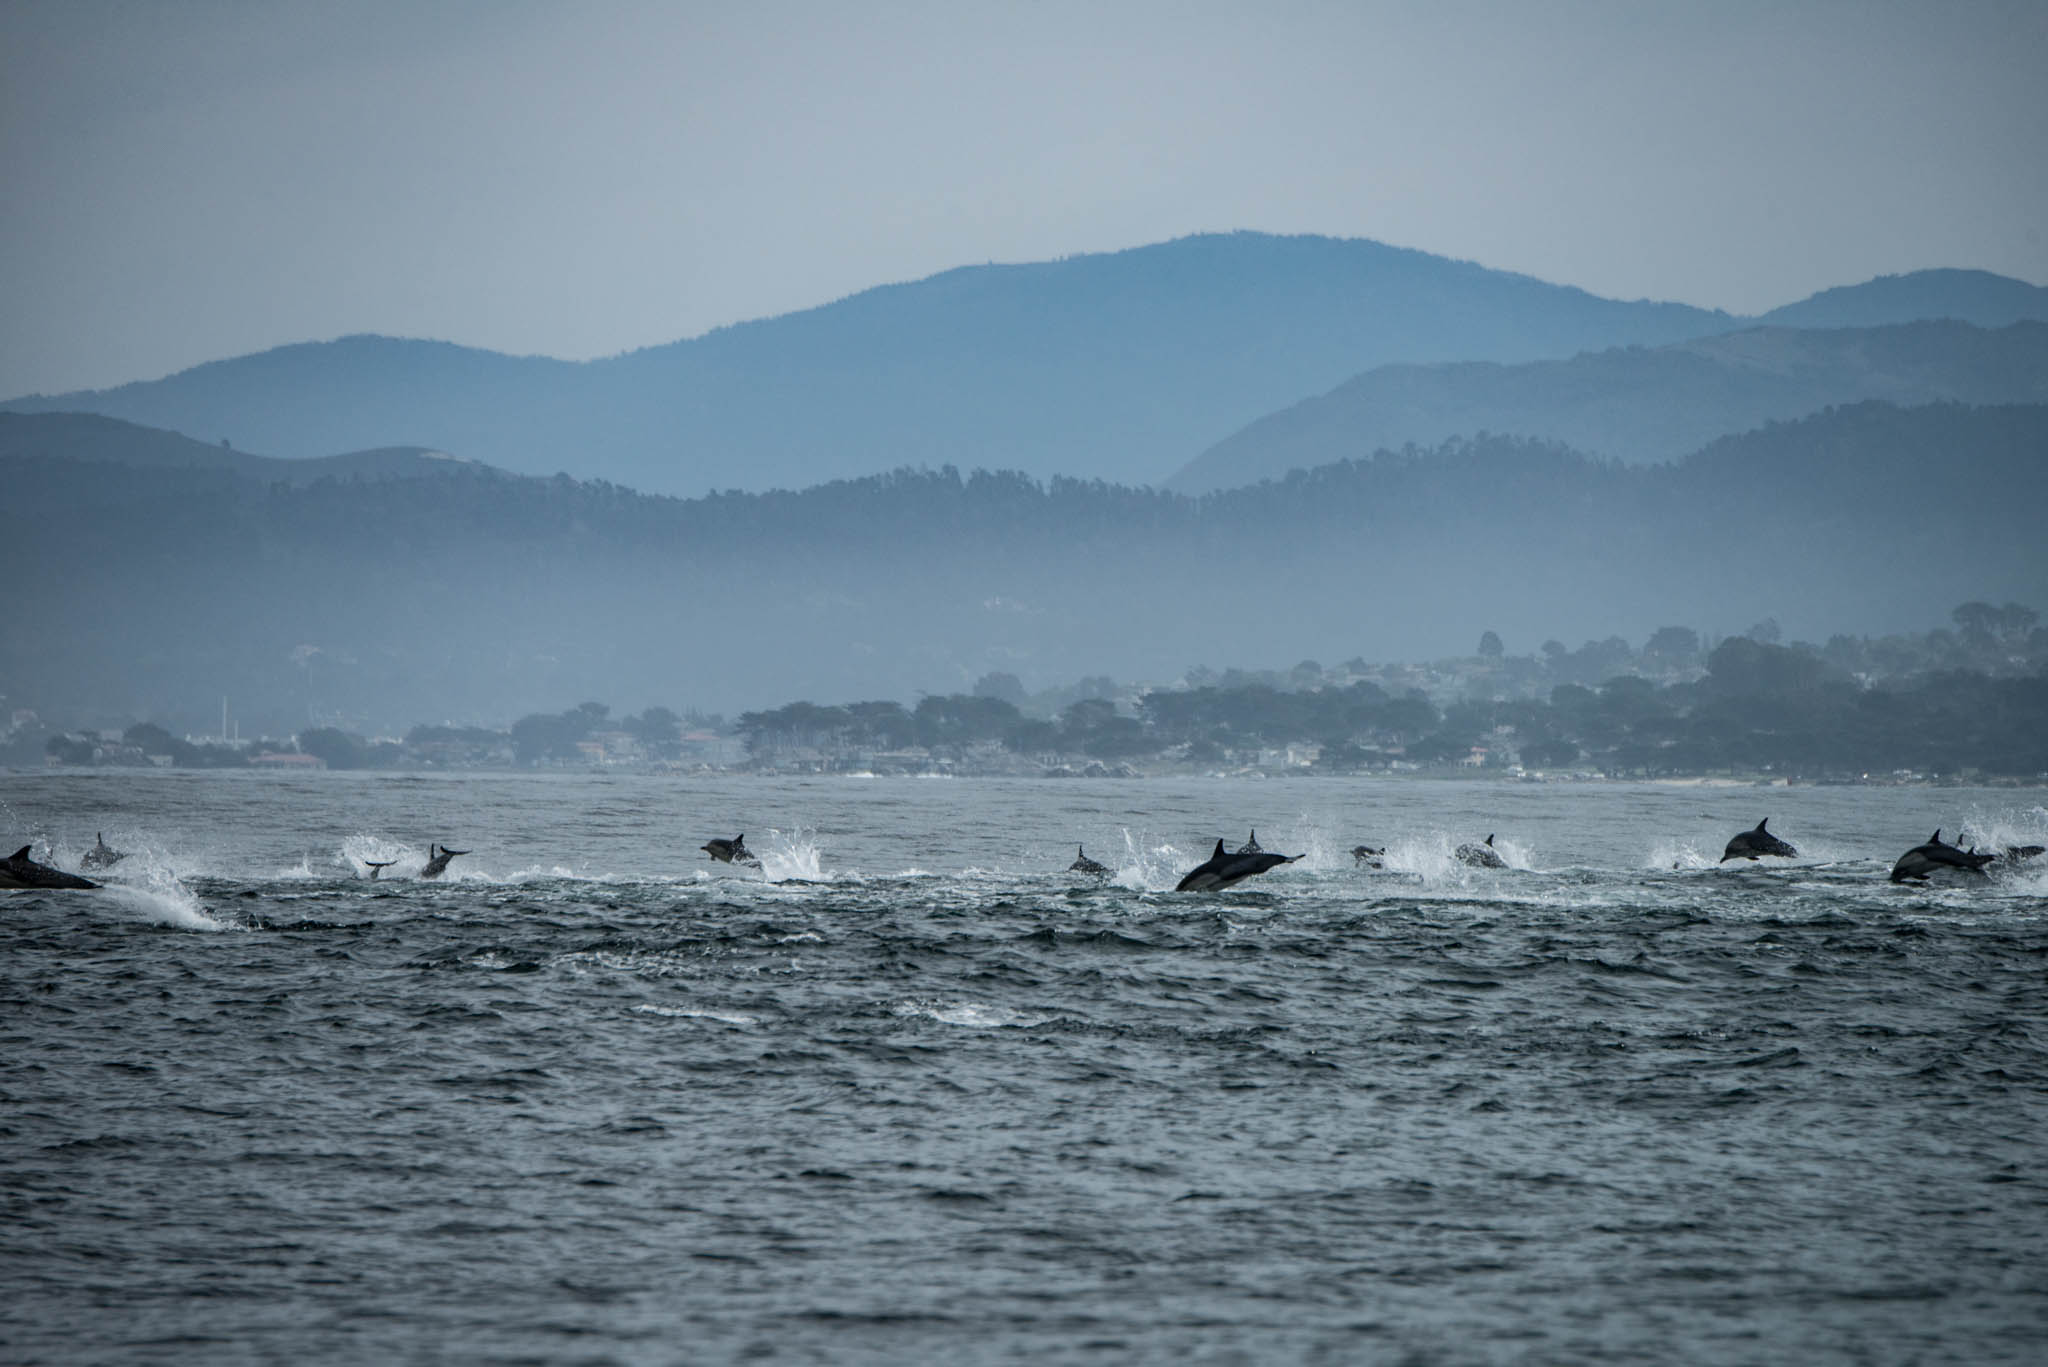 Common Dolphins Fleeing Orcas